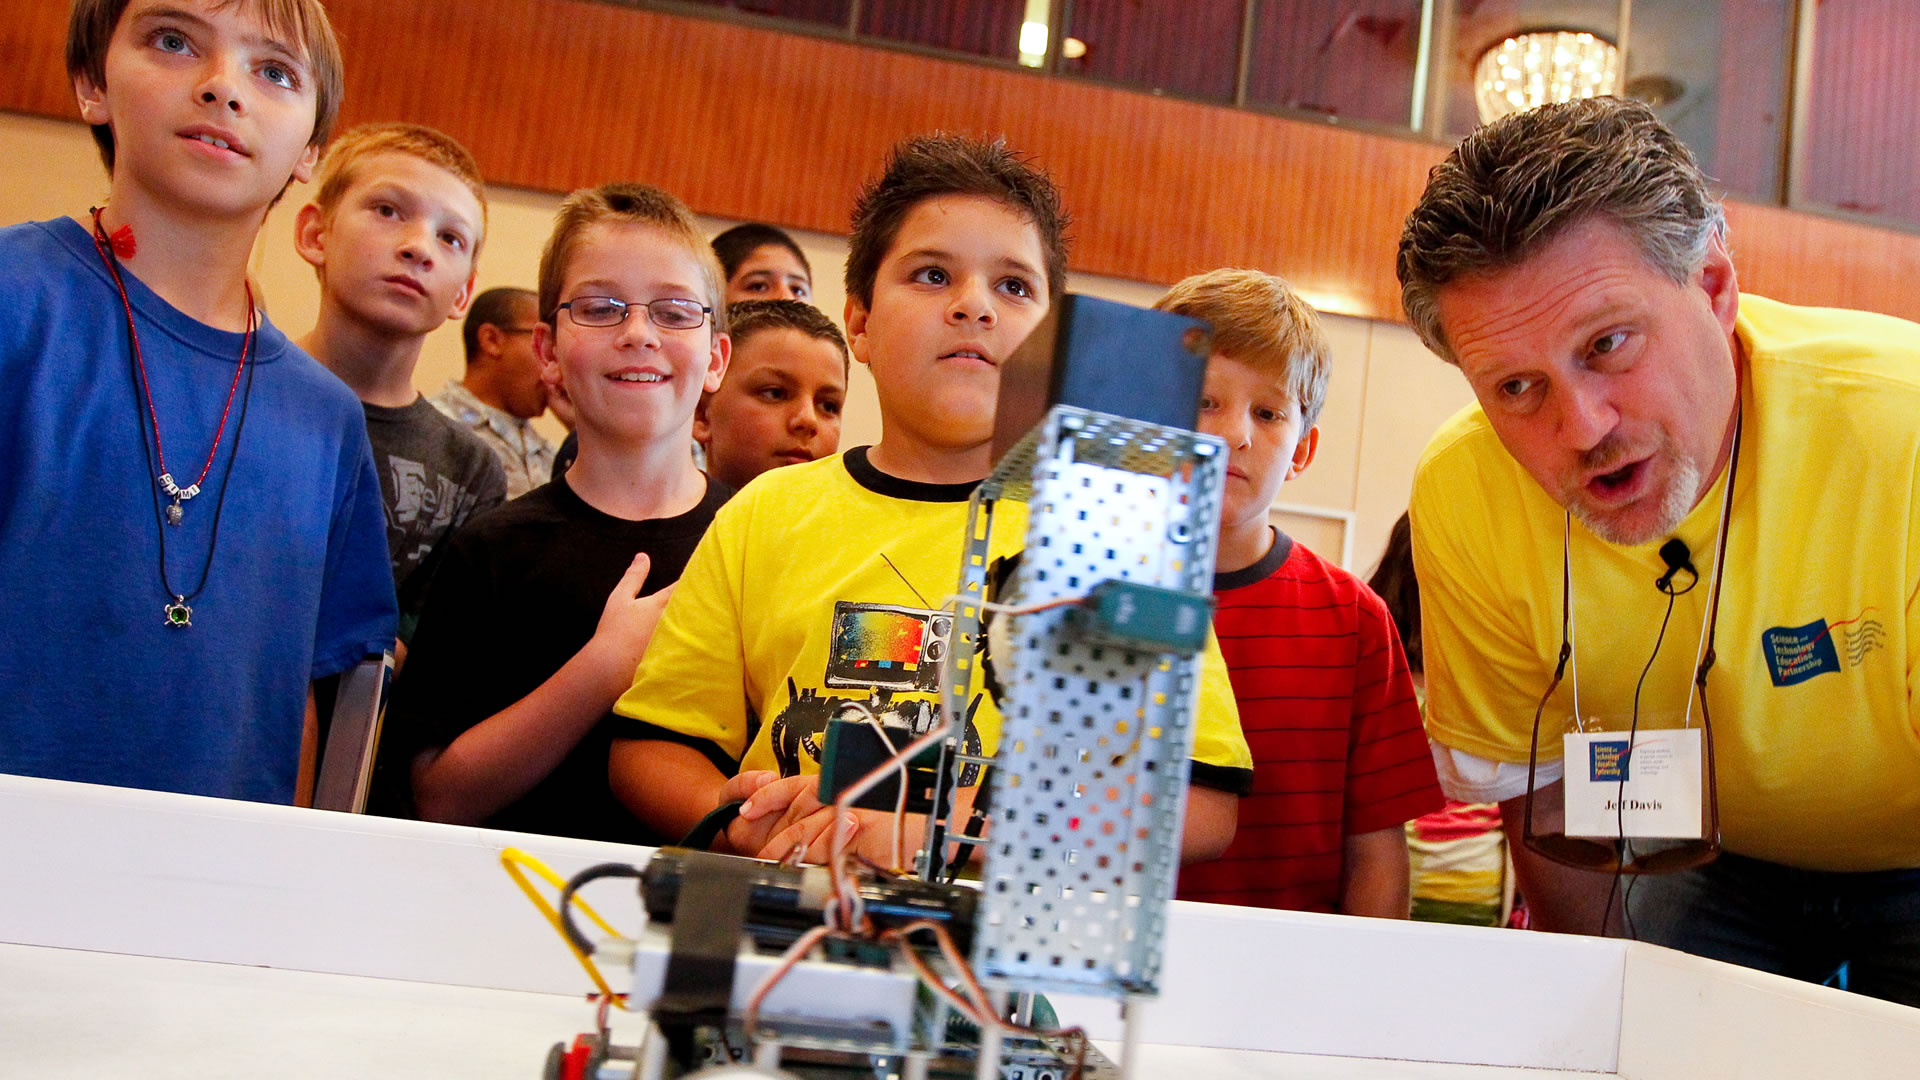 Teacher and students operating a small robot.